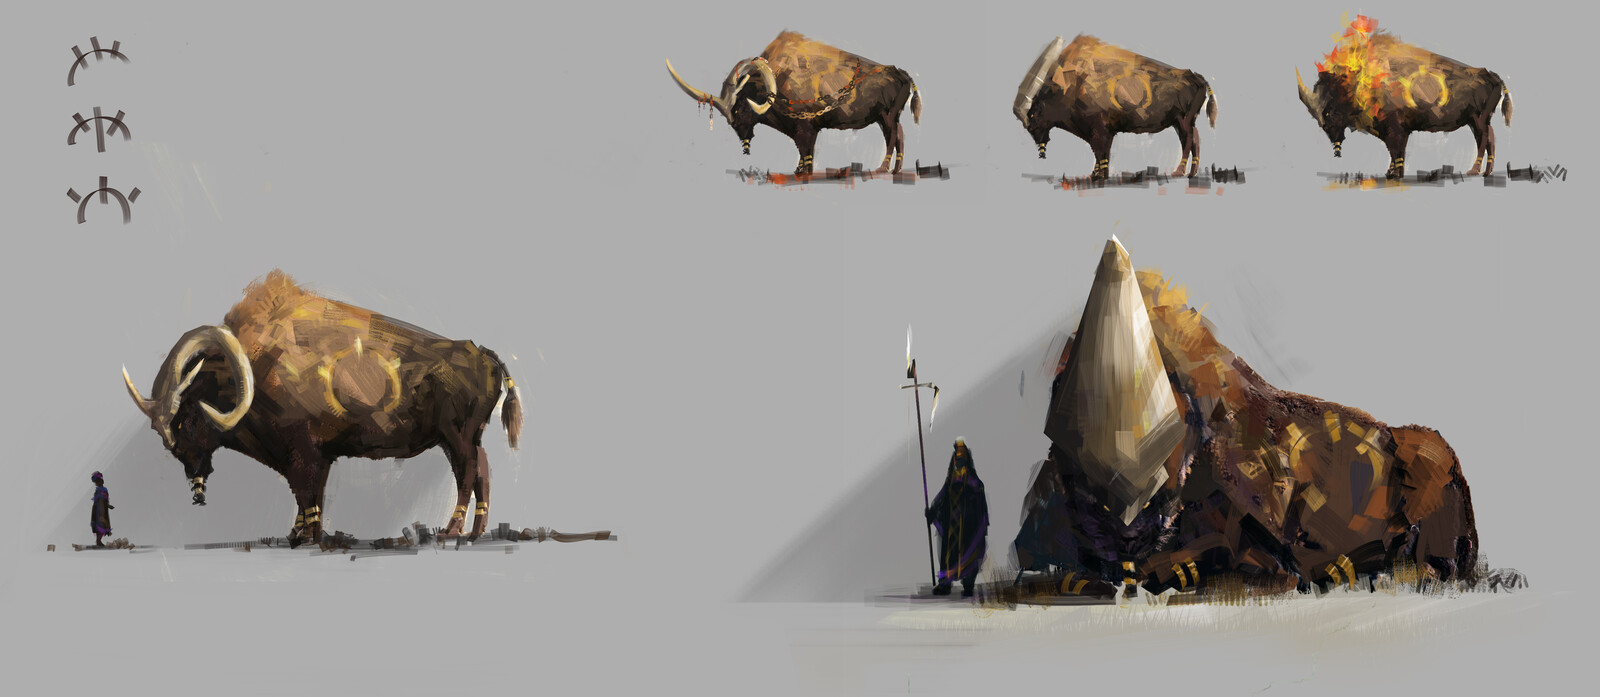 Lion/Bison creature concept